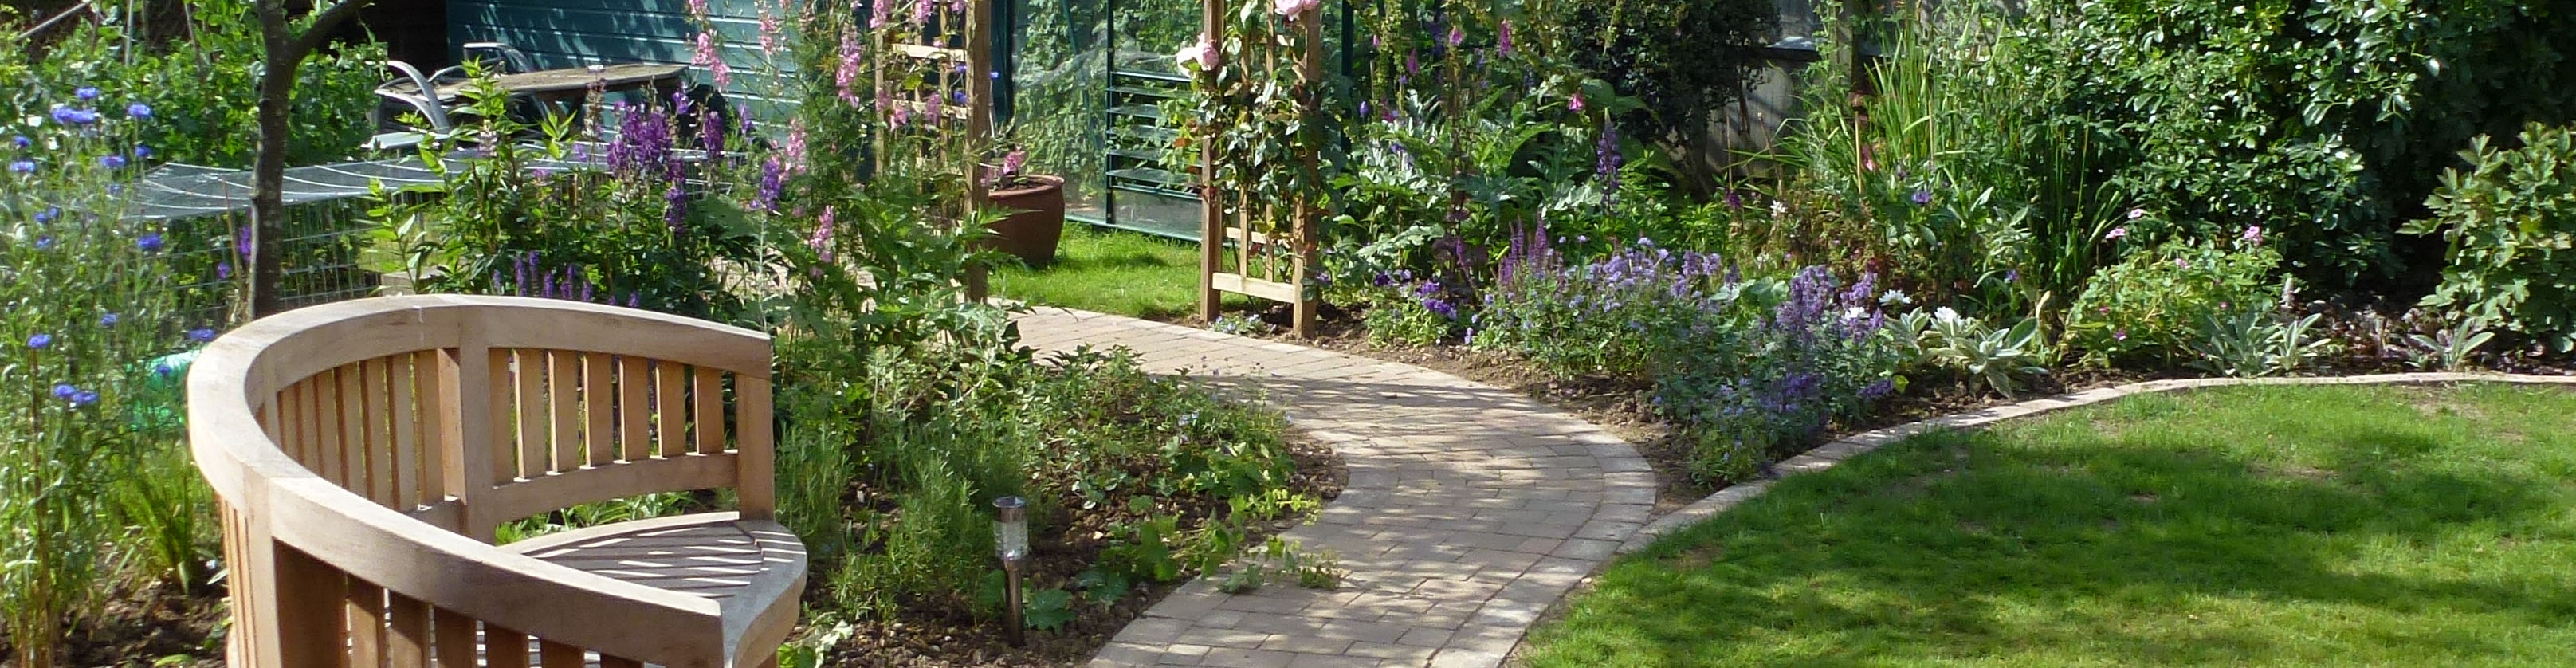 chiltern garden design – beautiful gardens designed and maintained